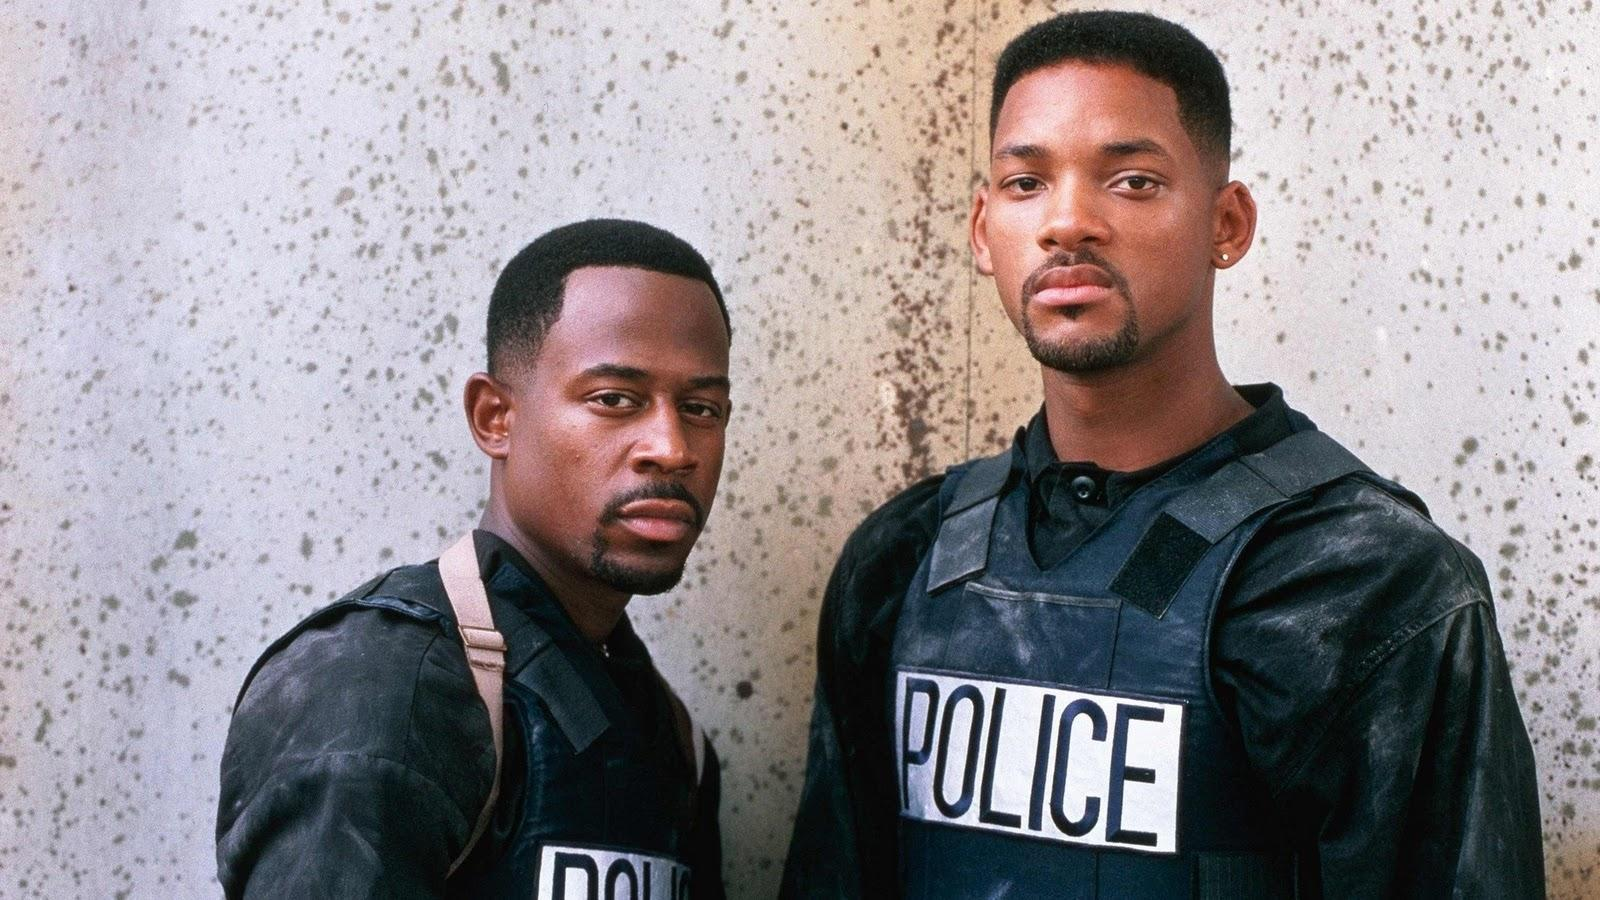 Bad Boys / Columbia Pictures. © 1995. All rights reserved.